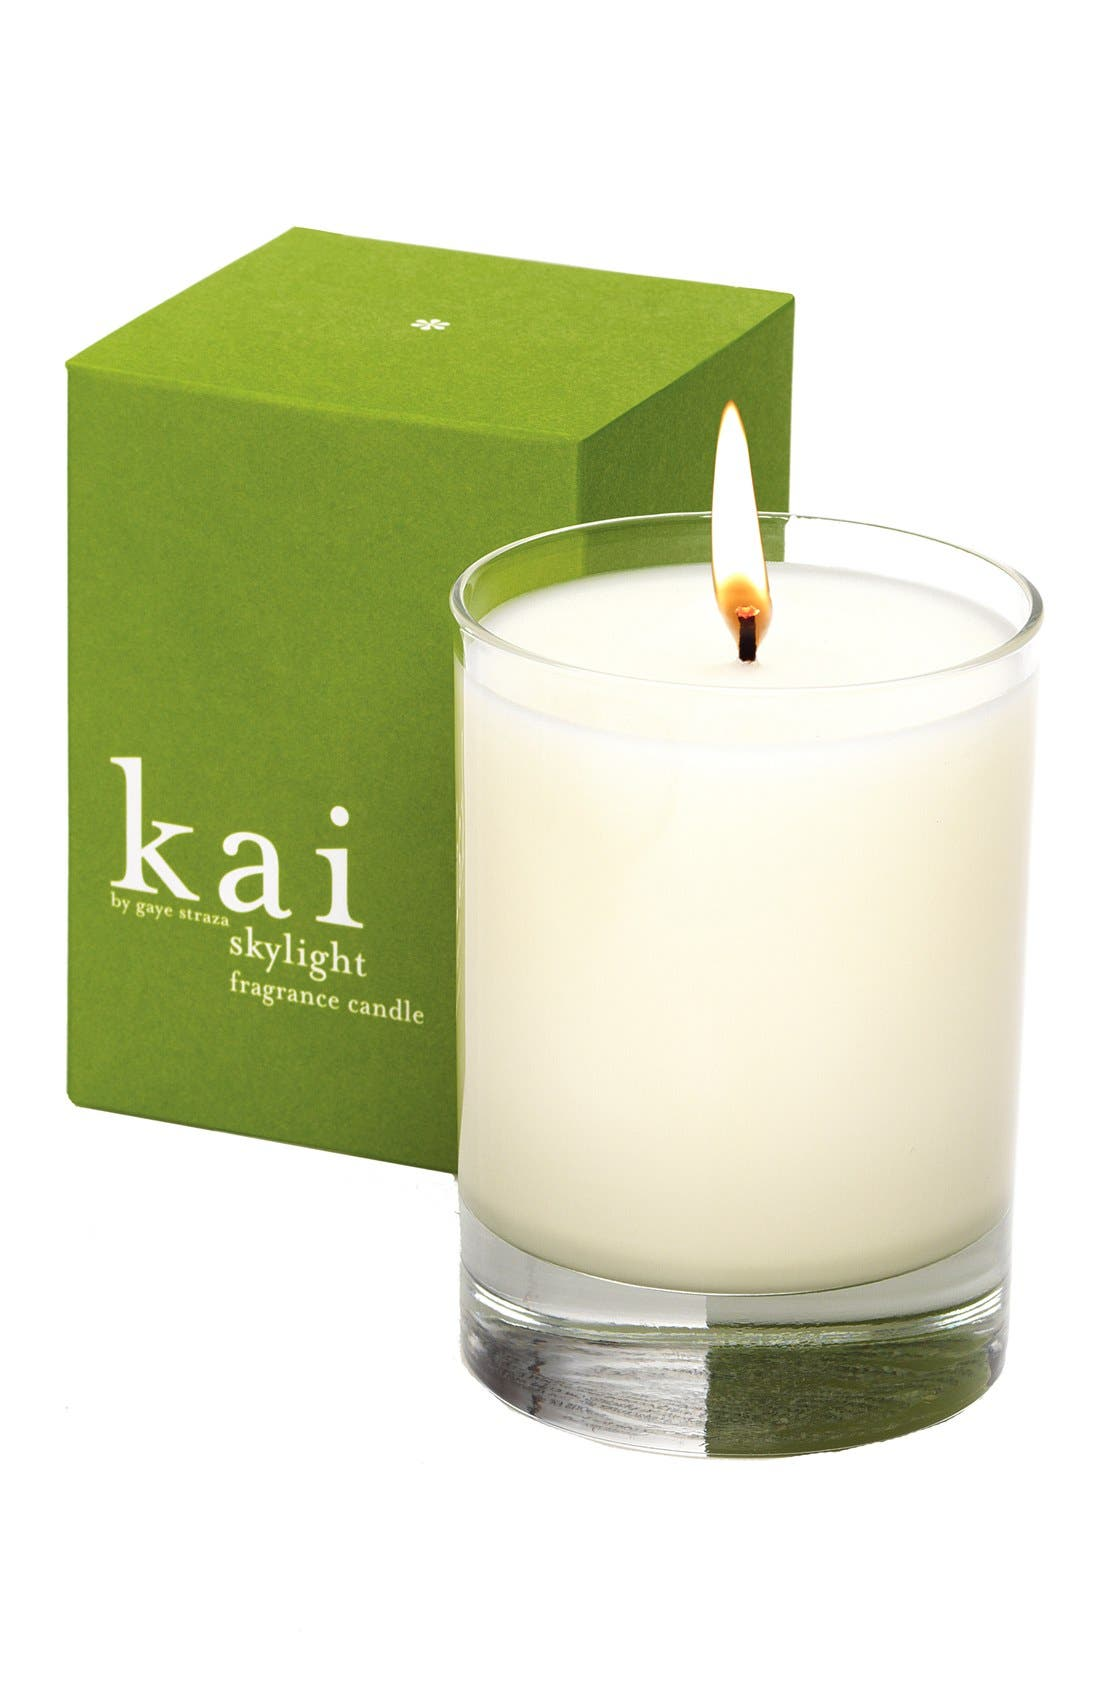 'Skylight' Fragrance Candle,                         Main,                         color, No Color